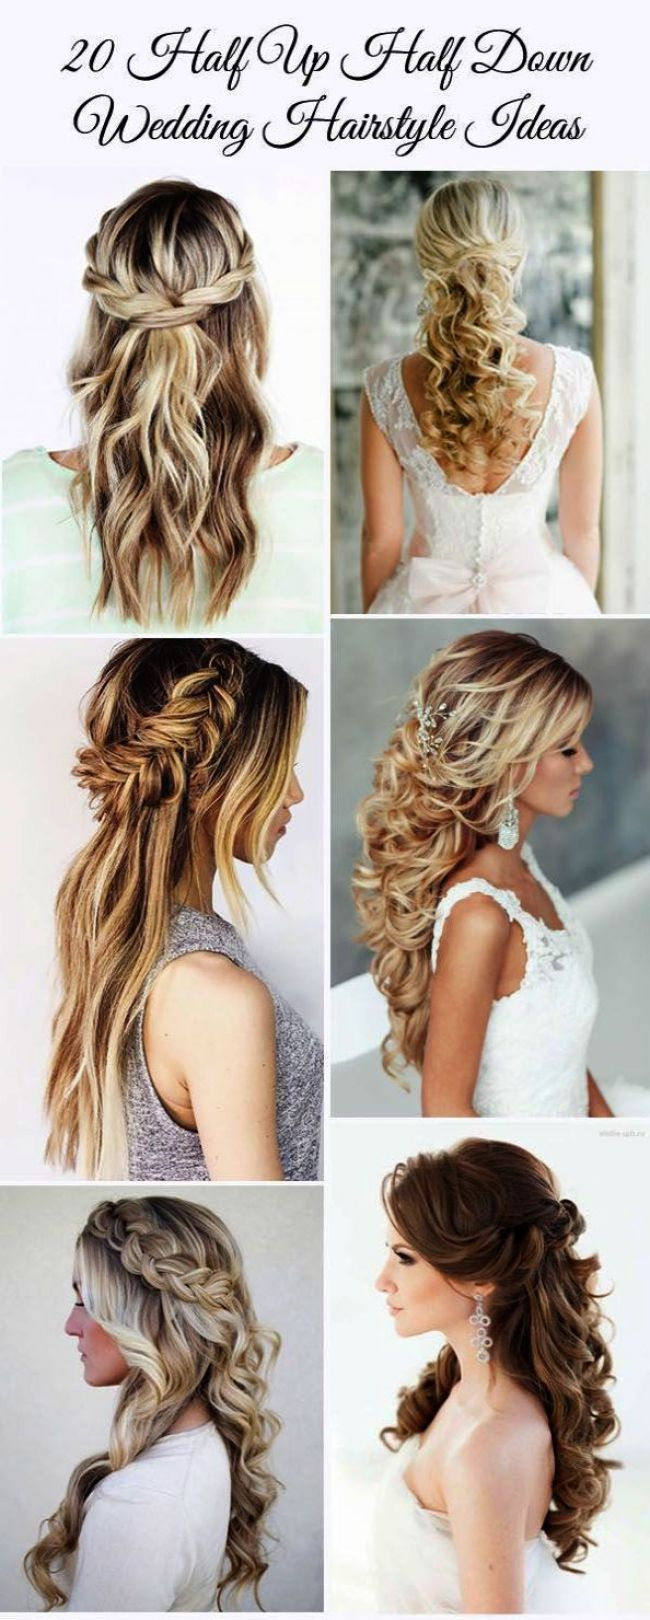 Stunning Wedding Hairstyles With Braids And Veil Follow Hairstyles In 2018 Pinterest Wedding Hairstyles Wedding Hair Down And Romantic We Wedding Hair Down Hair Styles Wedding Hairstyles